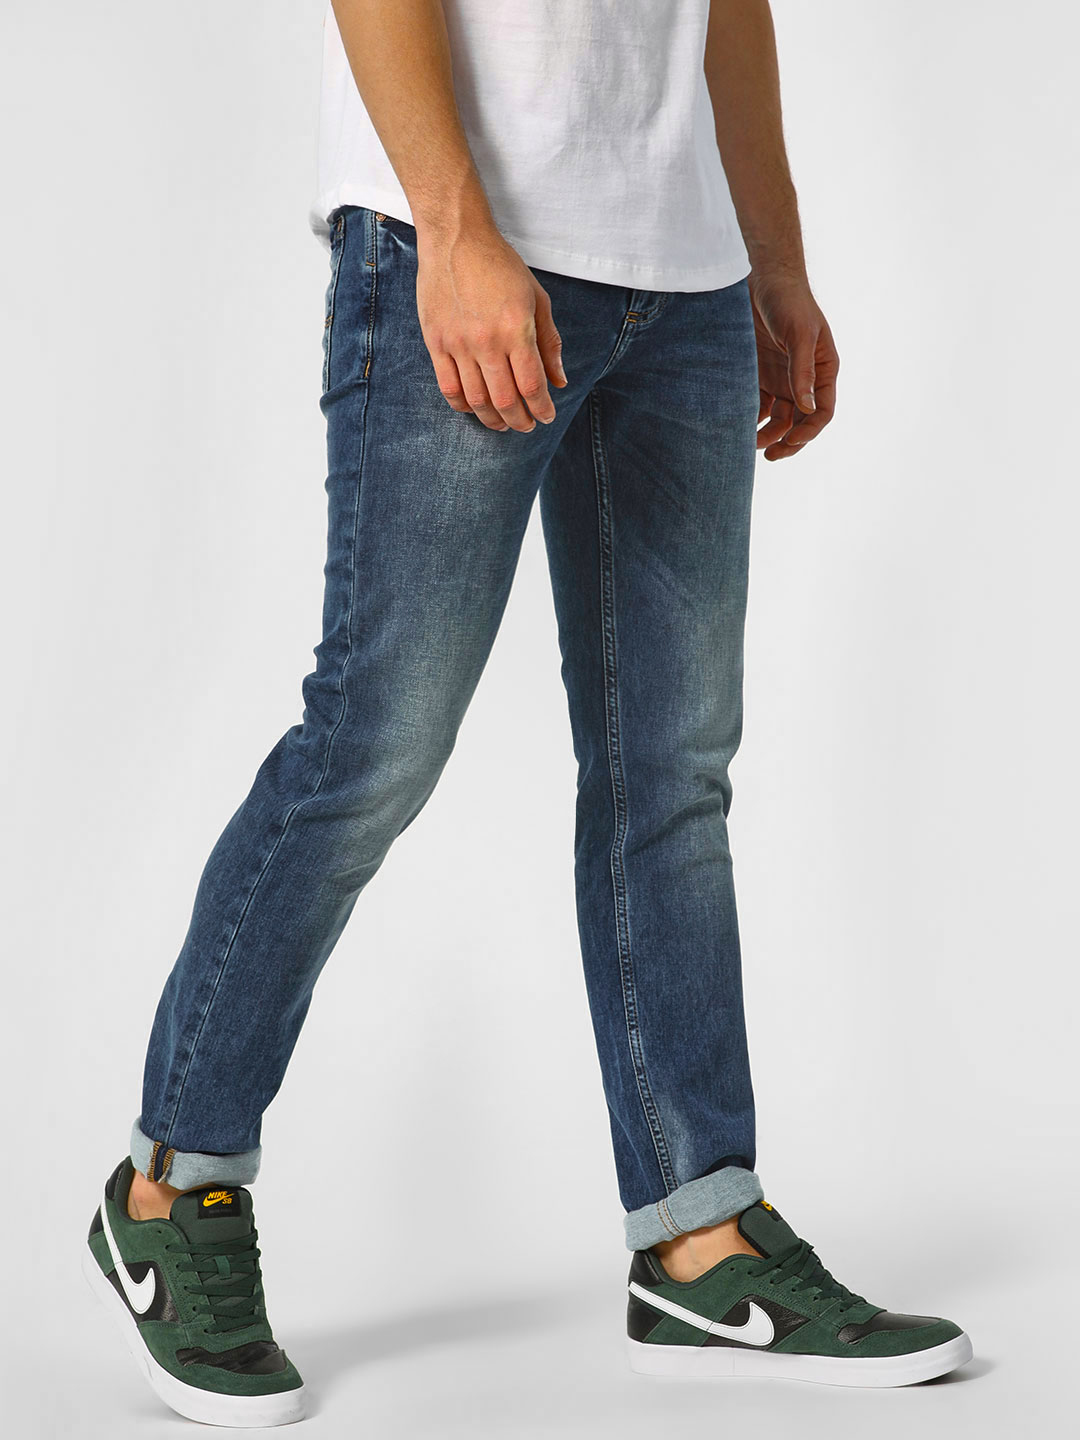 Indigo Nation Indigo Light Washed Slim Fit Jeans 1